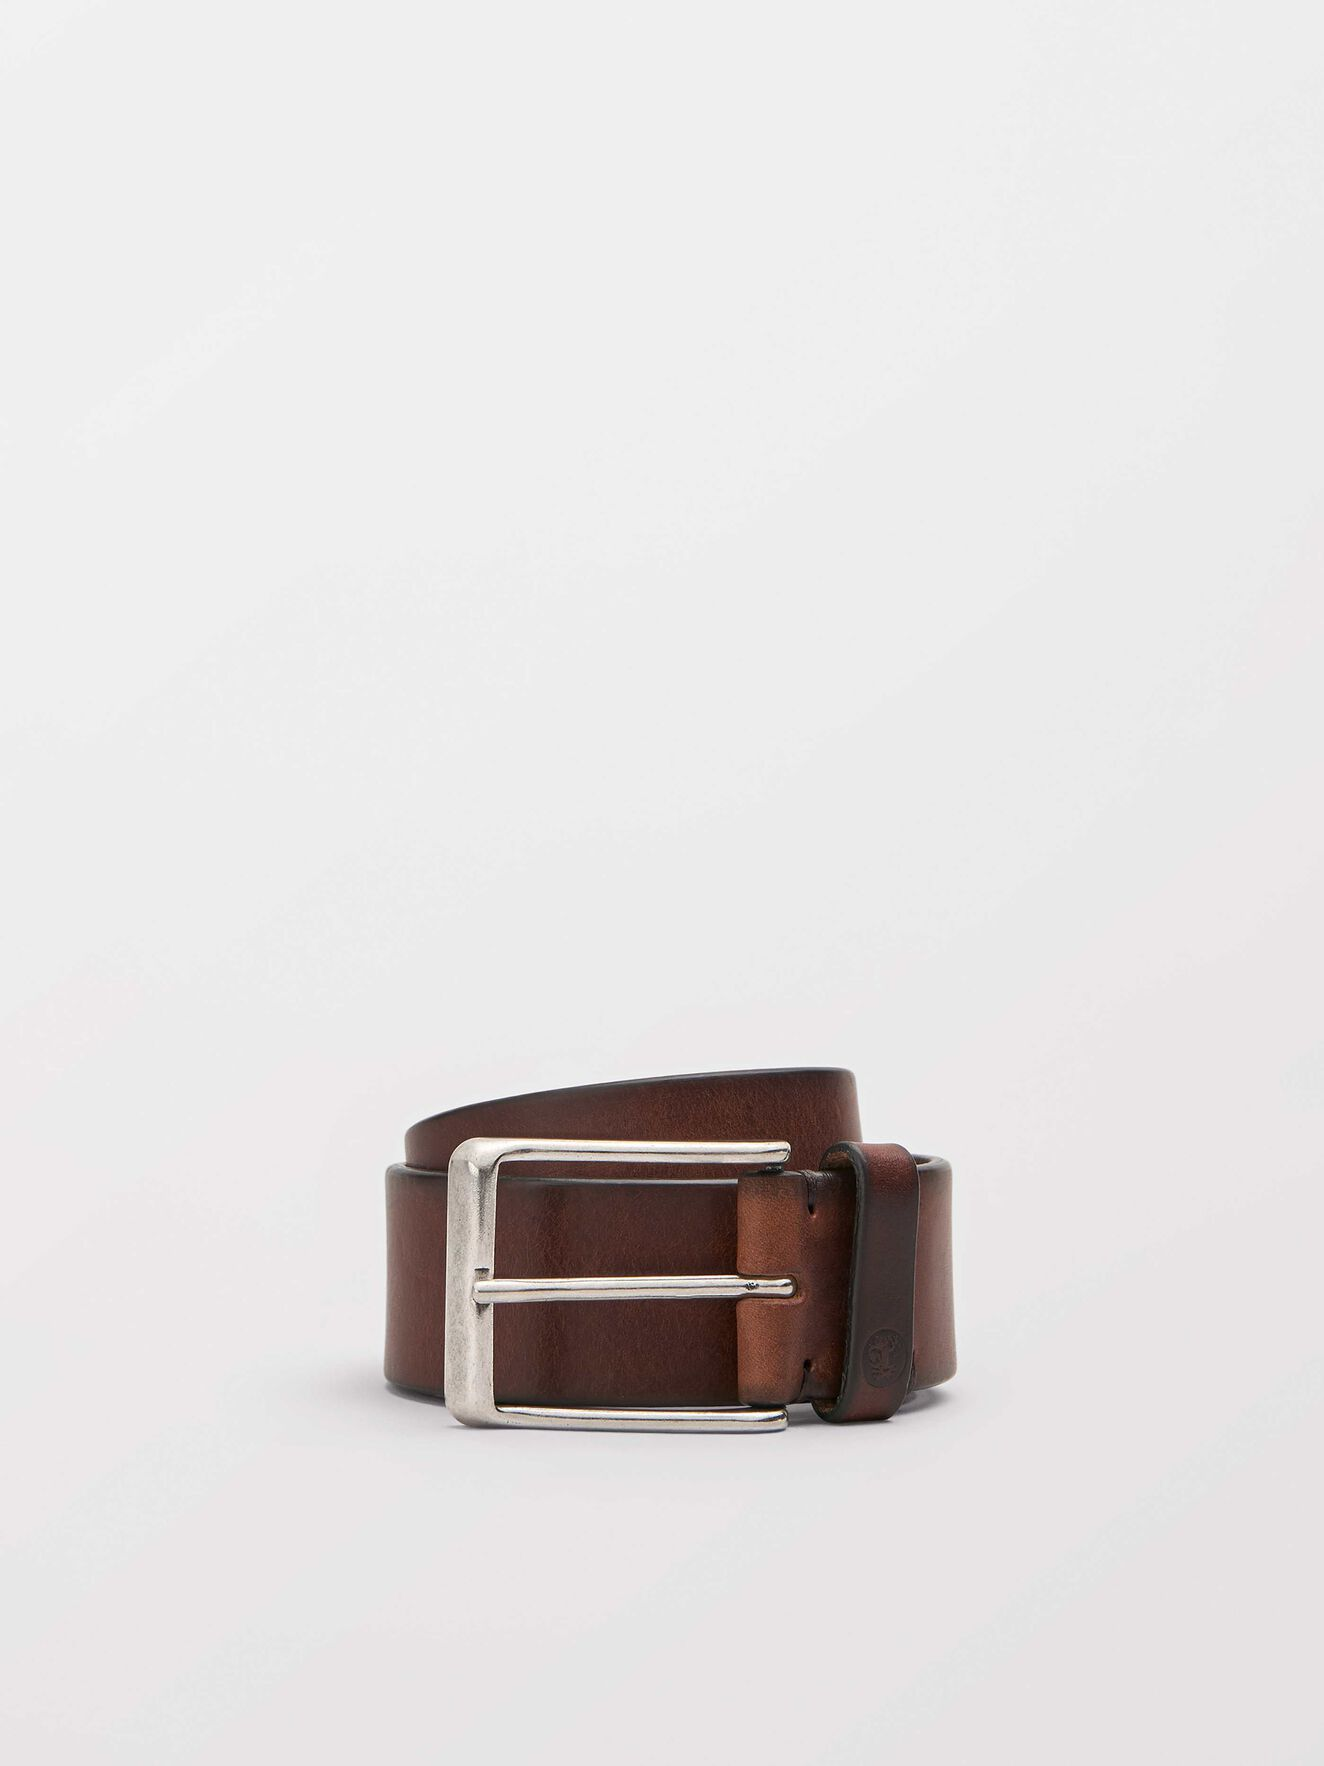 Hedman belt in Medium Brown from Tiger of Sweden